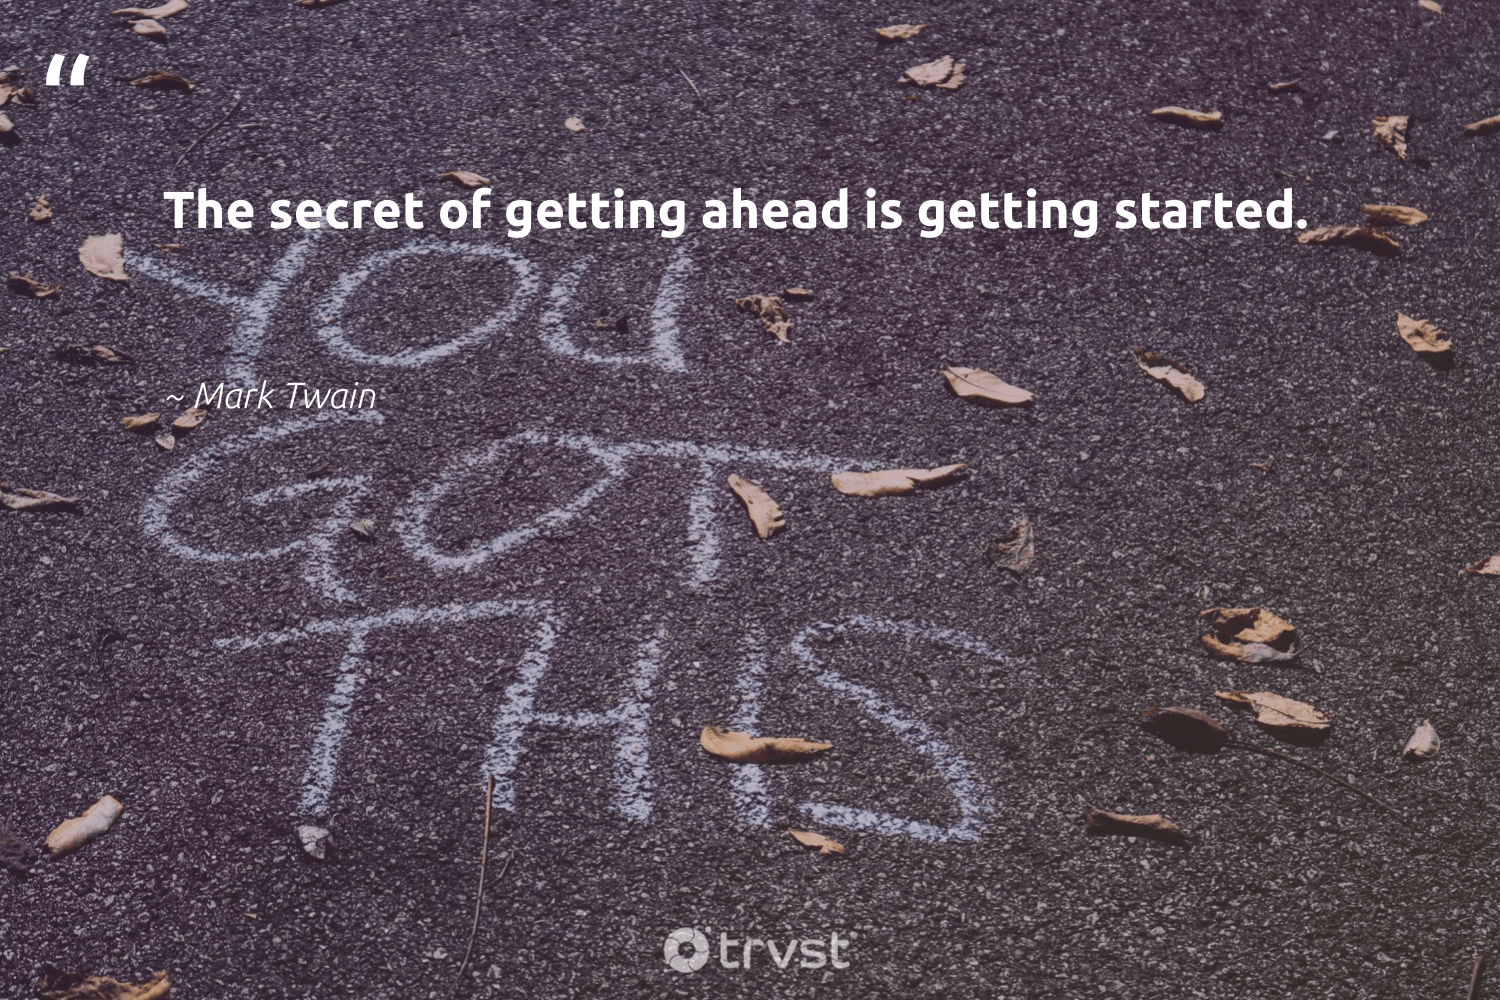 """""""The secret of getting ahead is getting started.""""  - Mark Twain #trvst #quotes #futureofwork #impact #nevergiveup #beinspired #softskills #dosomething #begreat #collectiveaction #dogood #bethechange"""